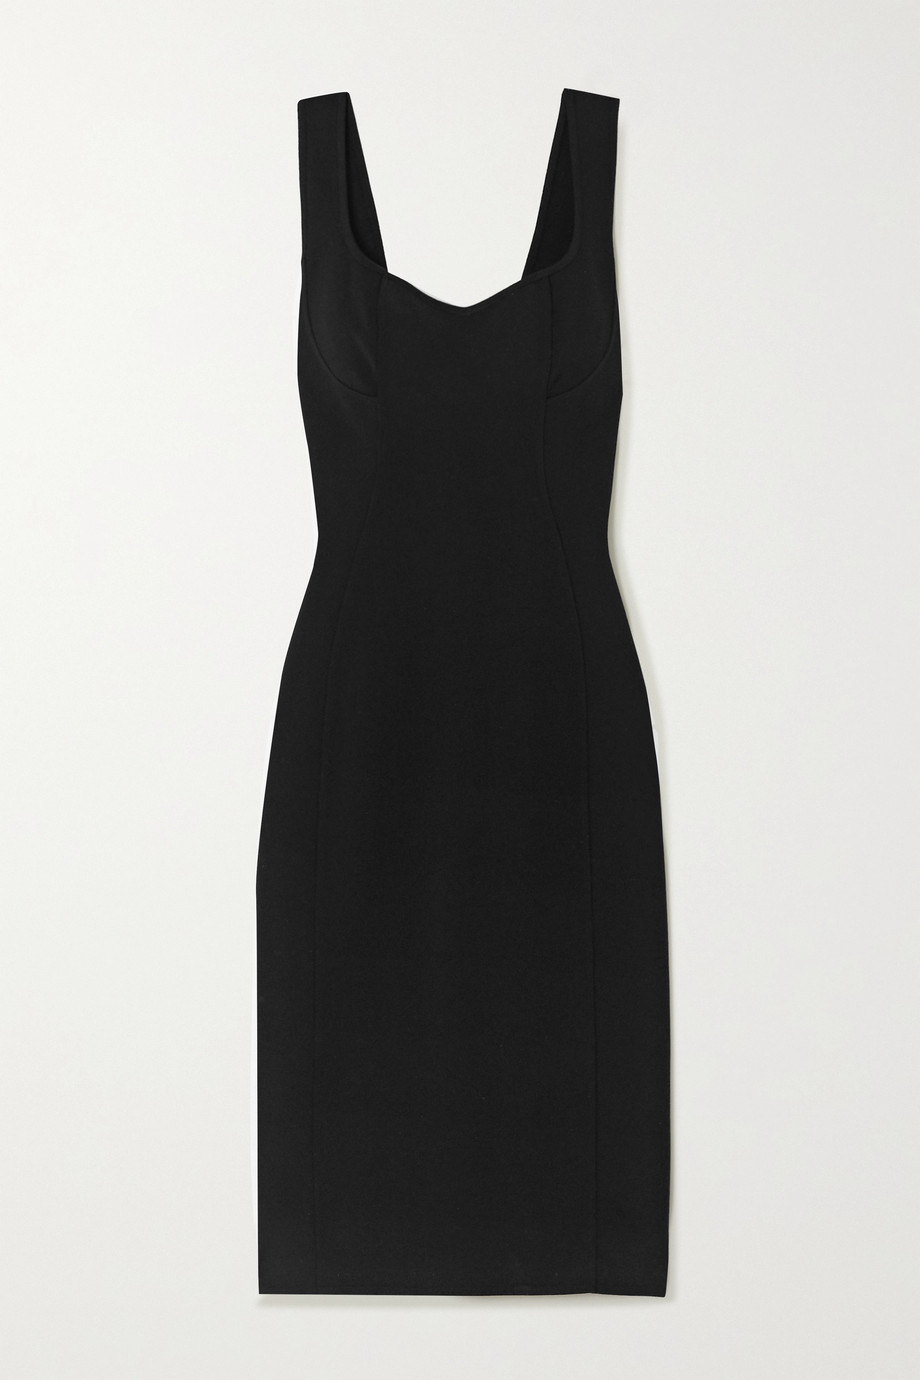 Alaïa Stretch-knit midi dress